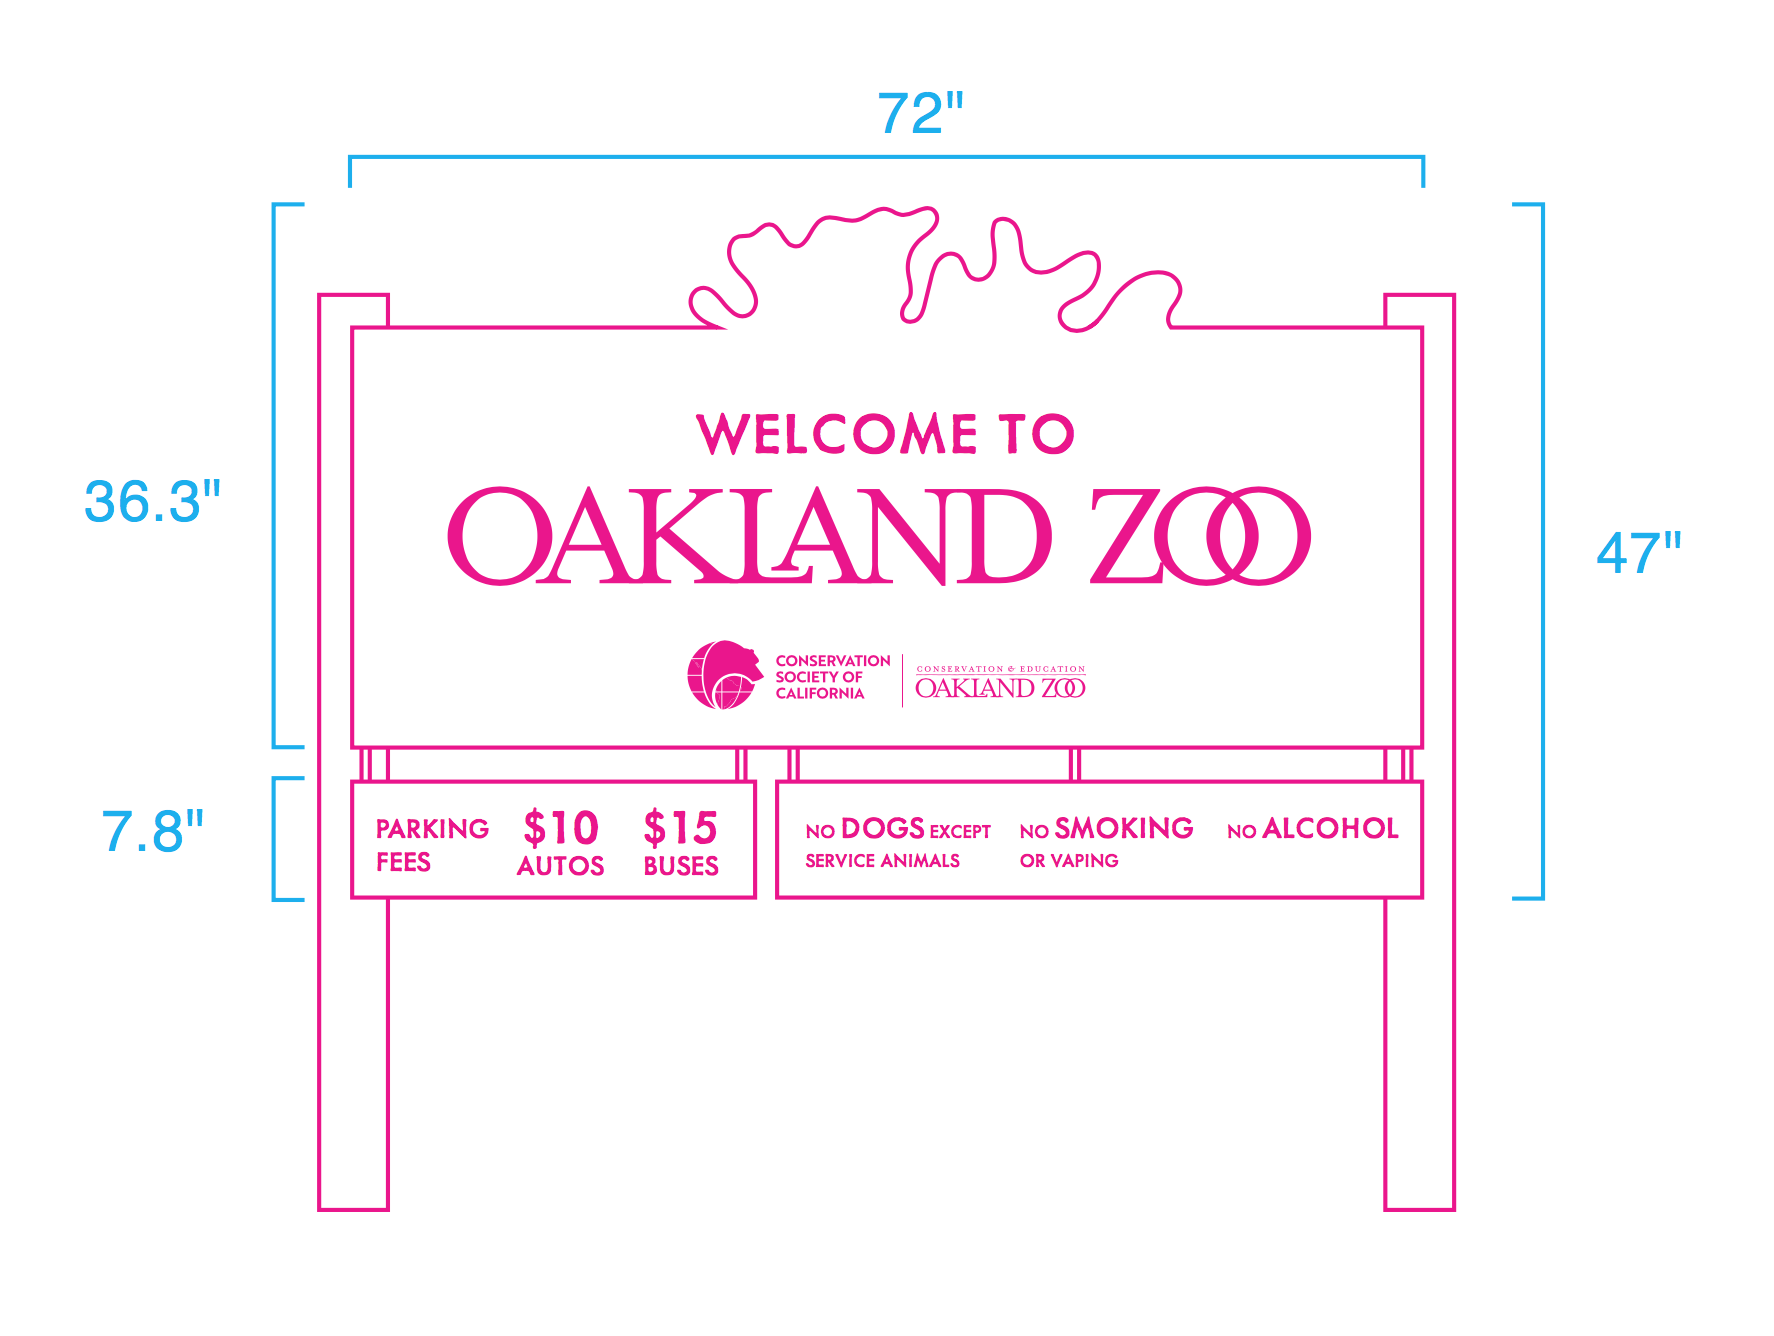 Oakland zoo national park style post sign mockup dimensions